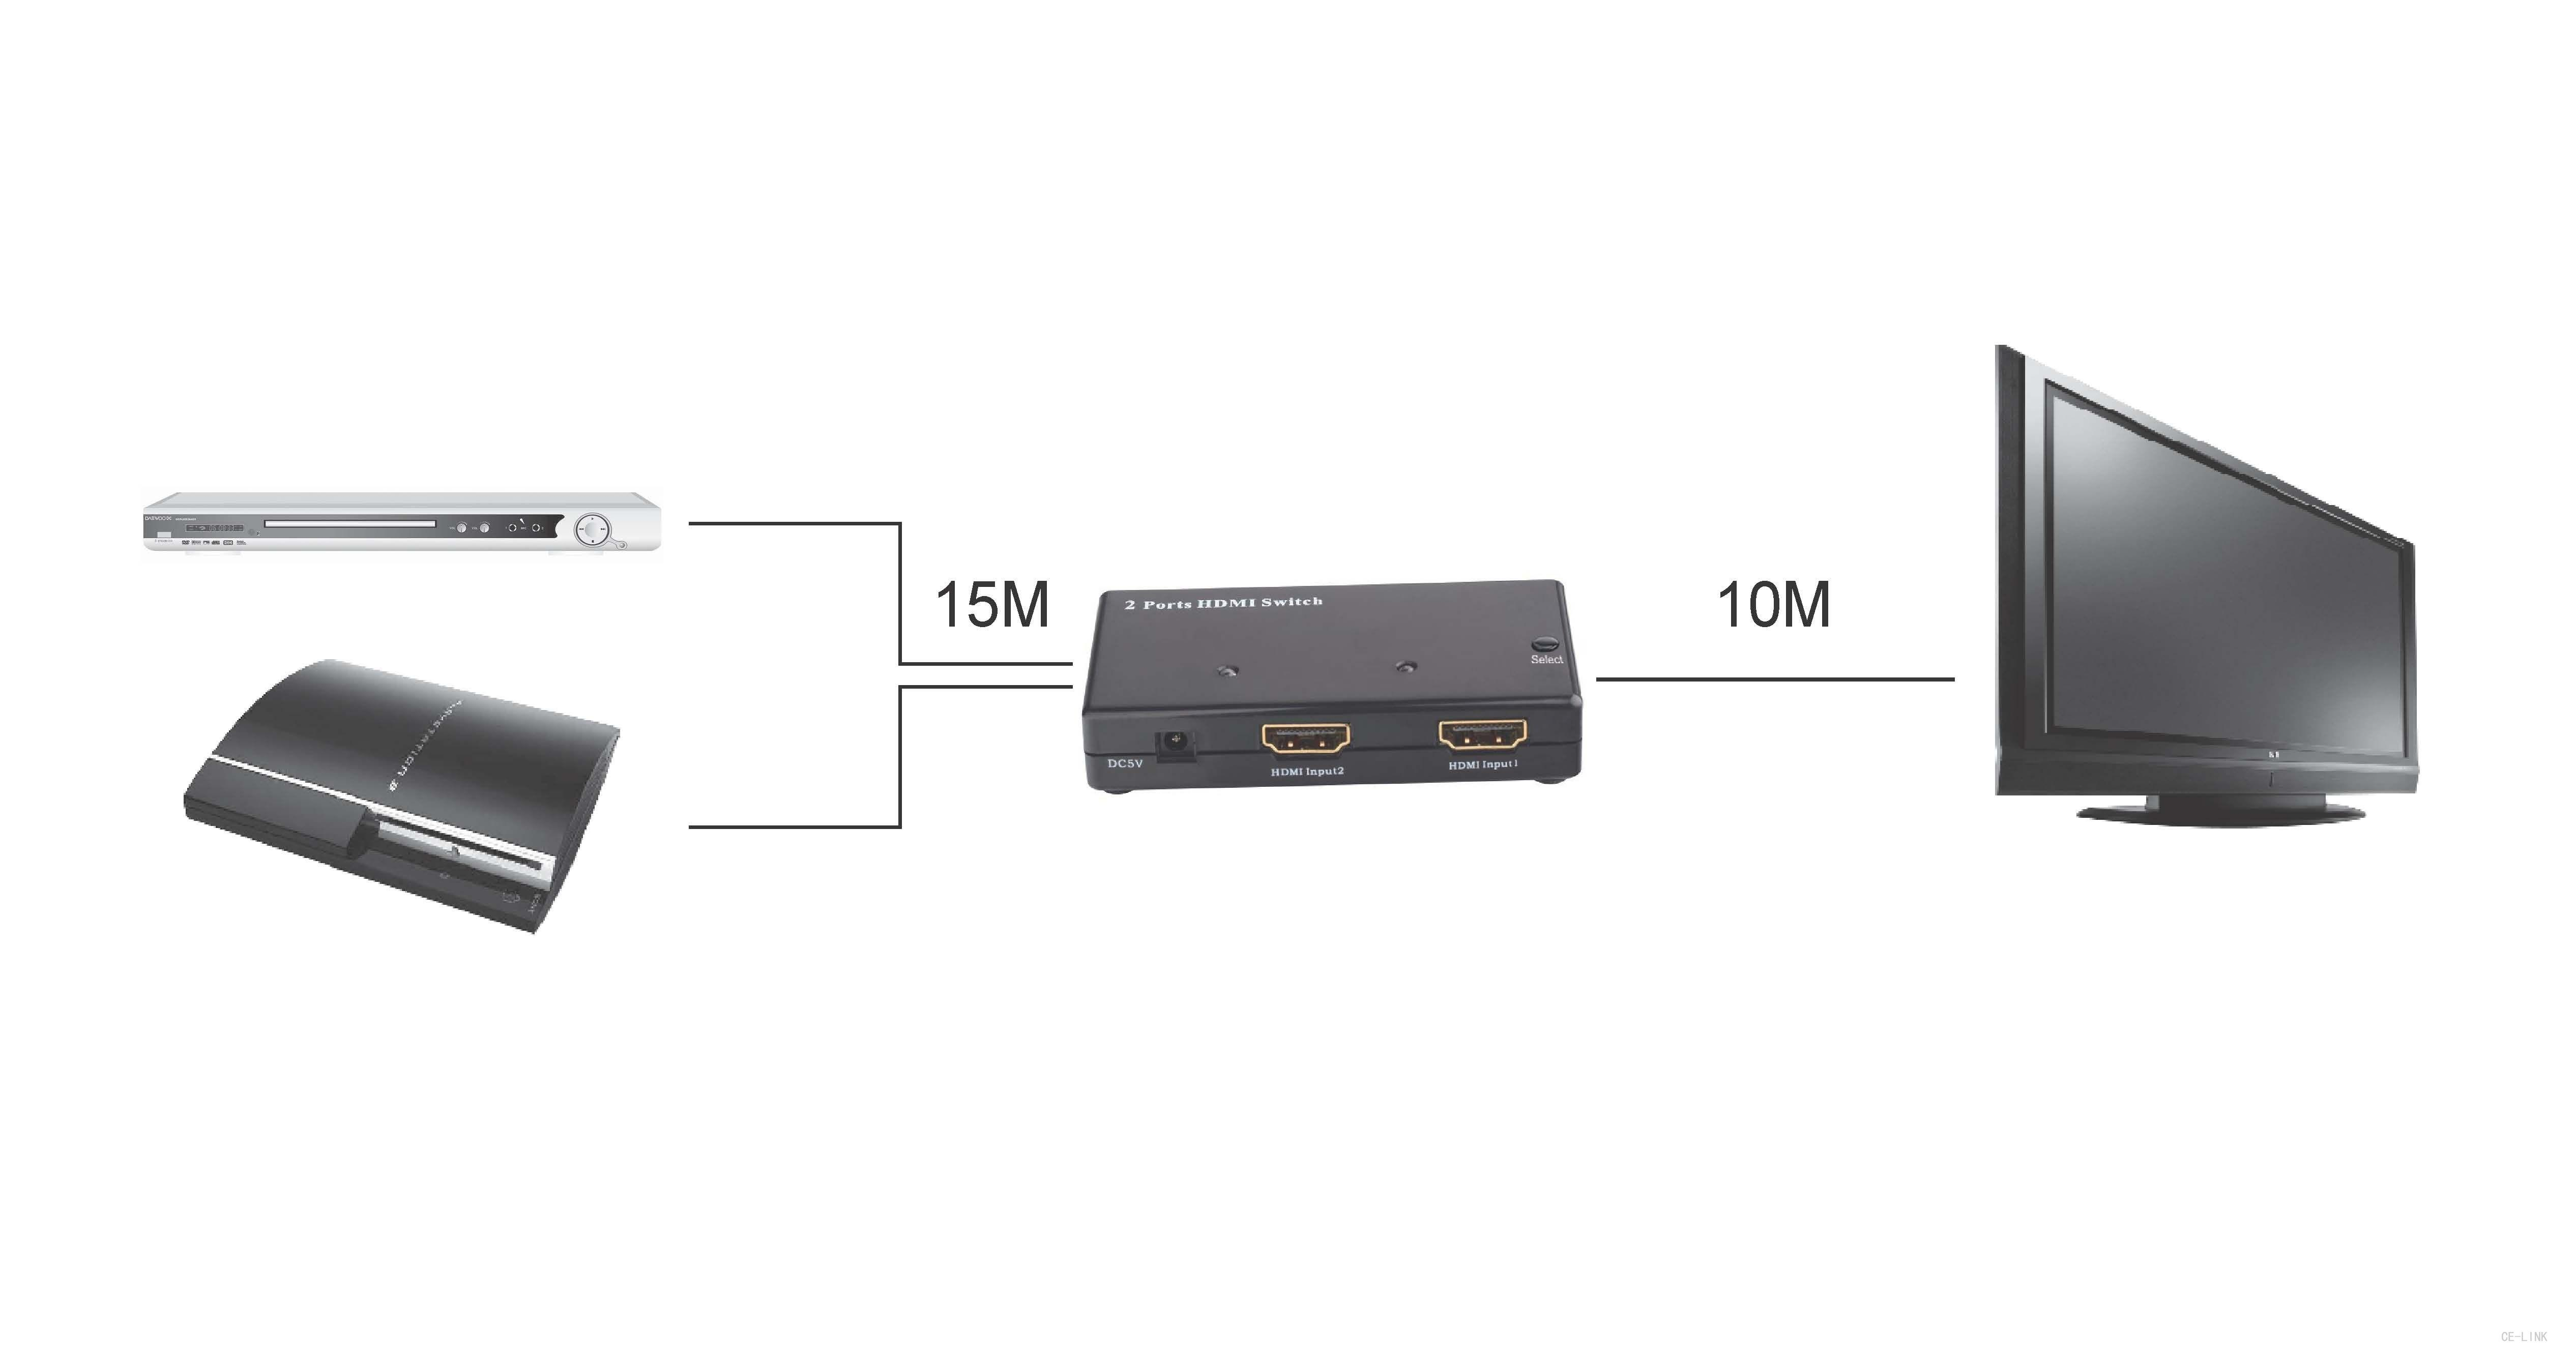 Hdmi Switch 2 Input 1 Output Audio Video And Splitter Port Patch Panel Also Led Light Simple Circuit Diagram